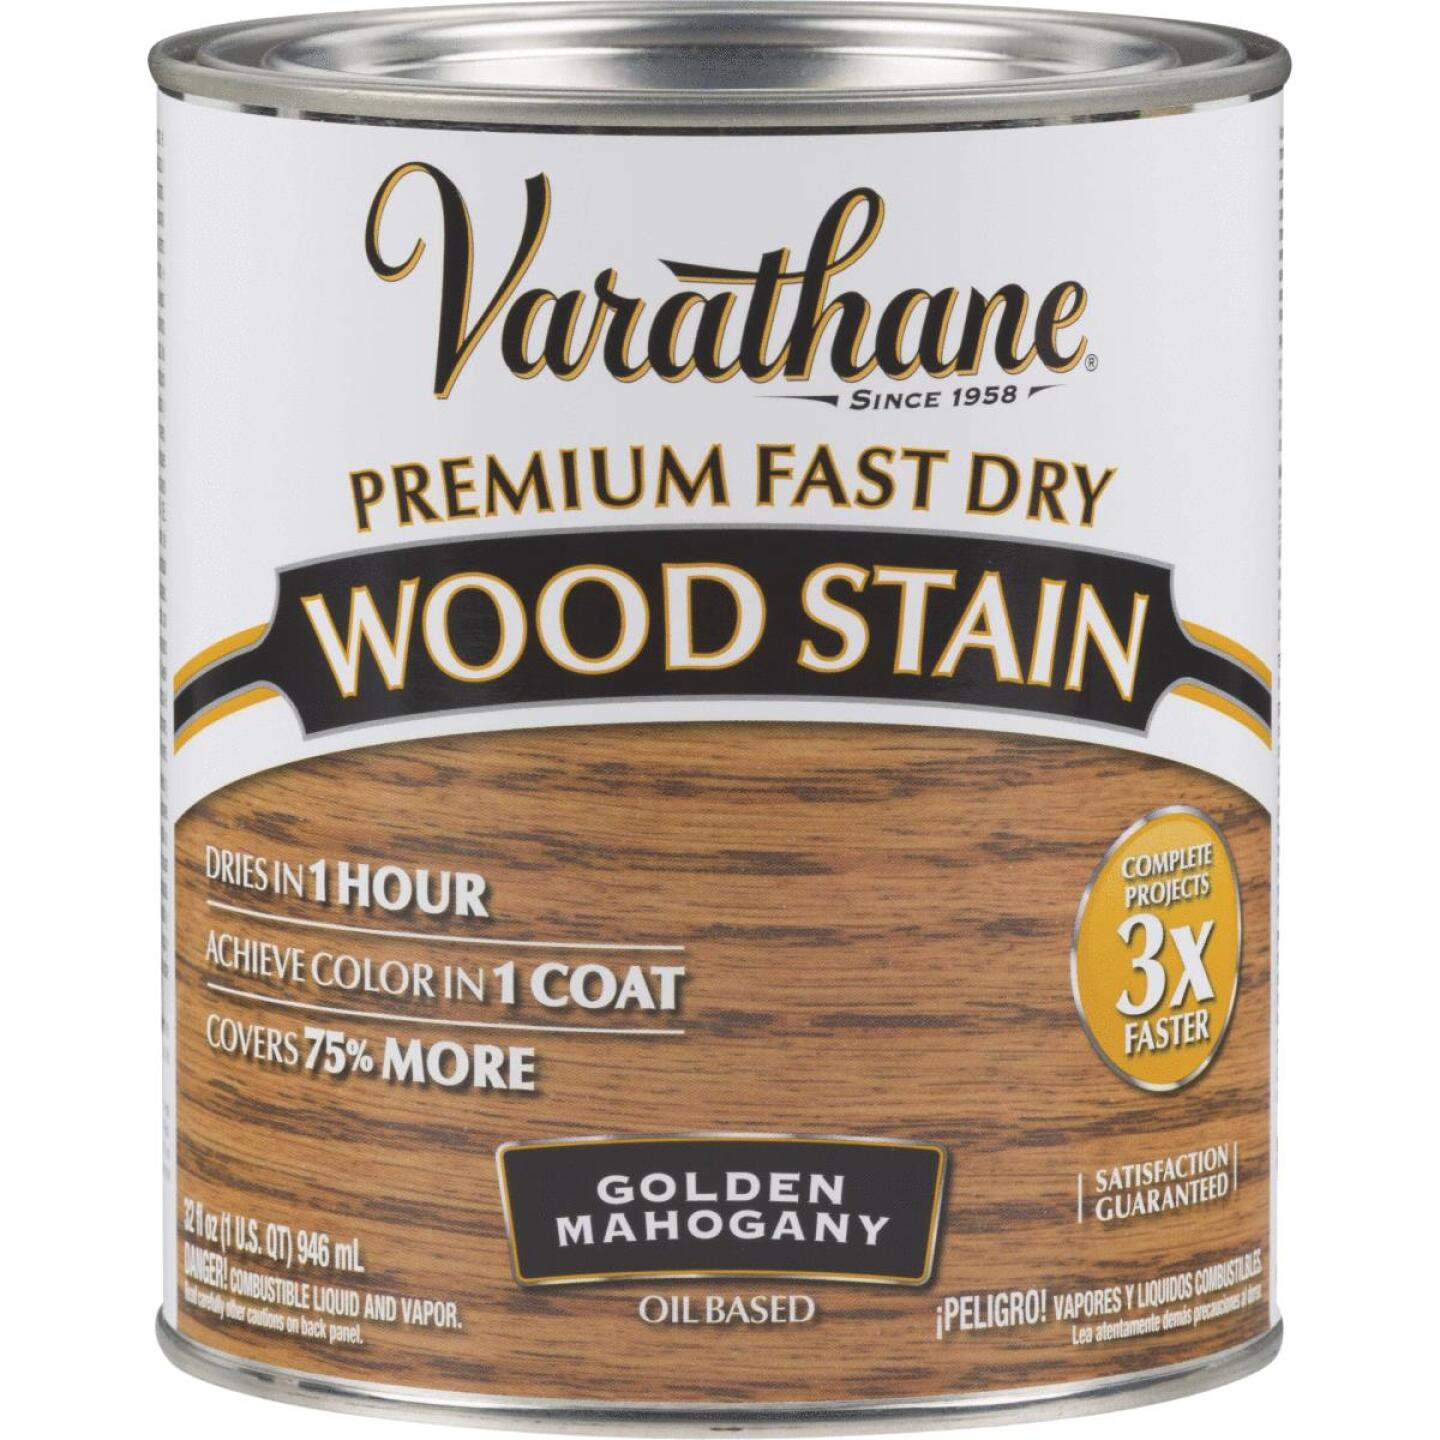 Varathane Fast Dry Golden Mahogany Urethane Modified Alkyd Interior Wood Stain, 1 Qt. Image 1